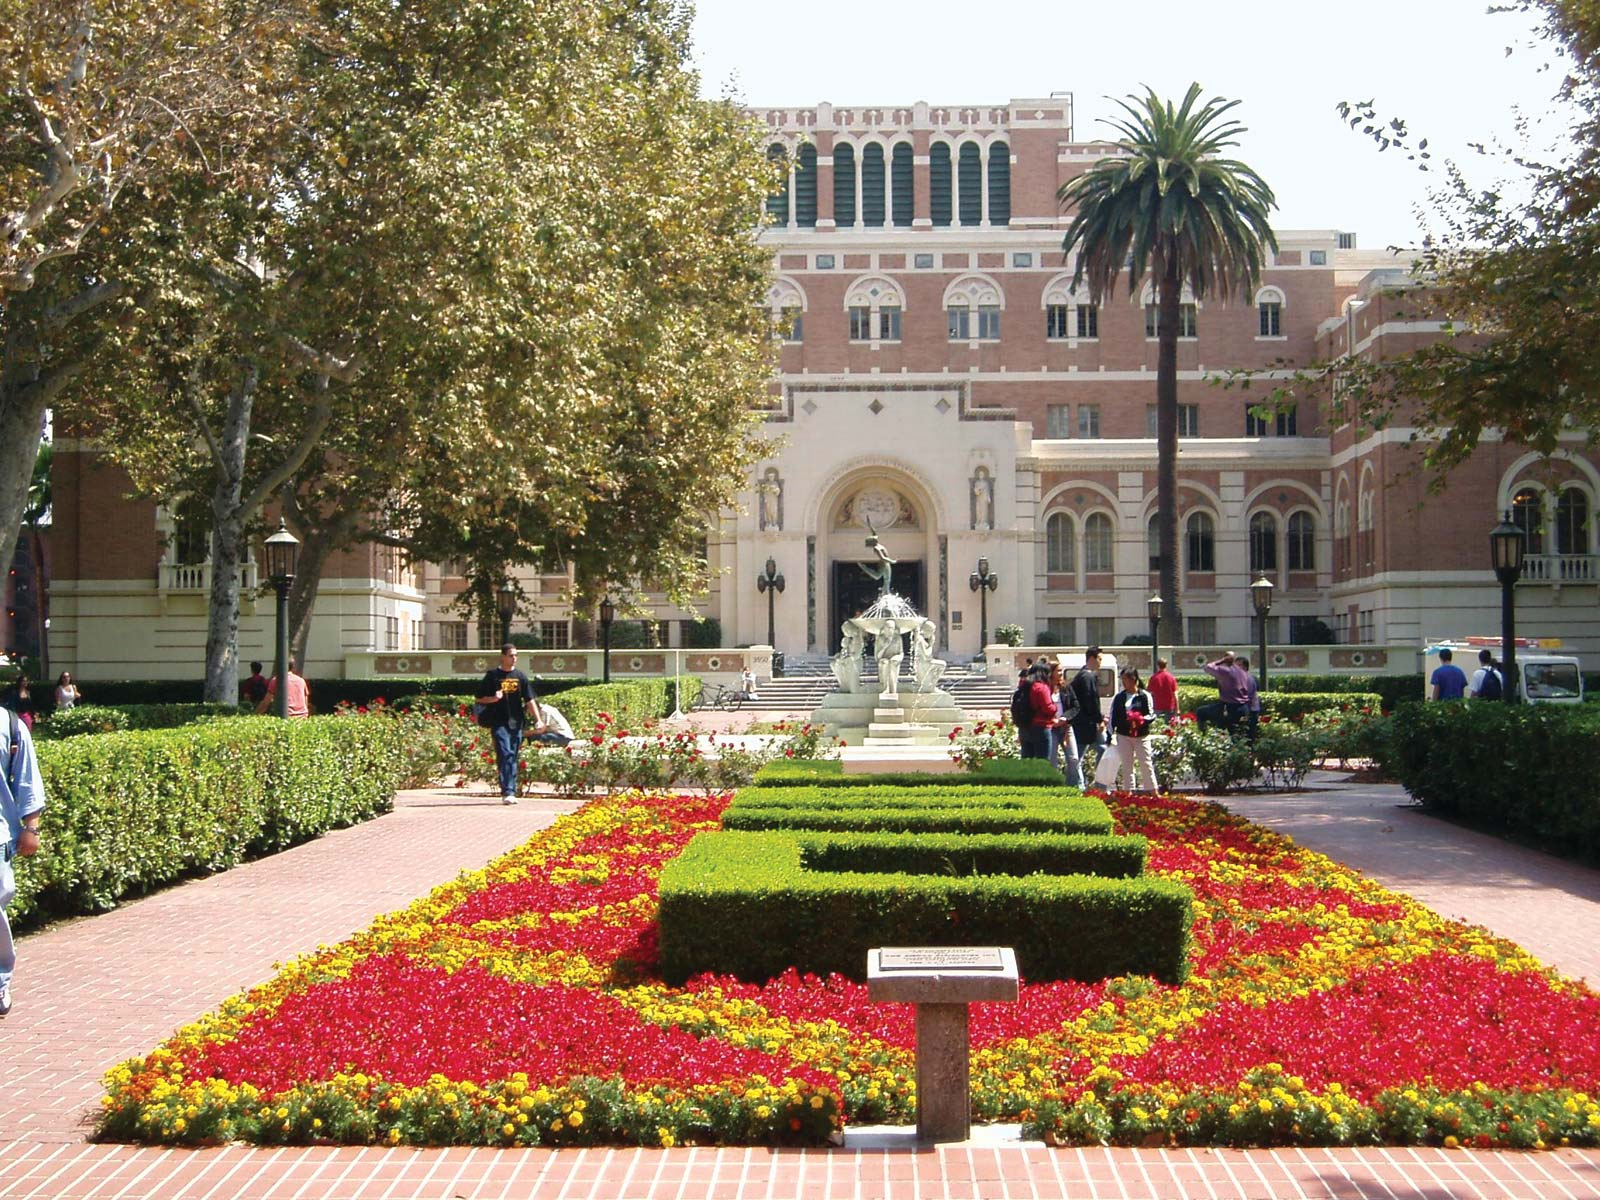 Tutoring Services at the University of Southern California